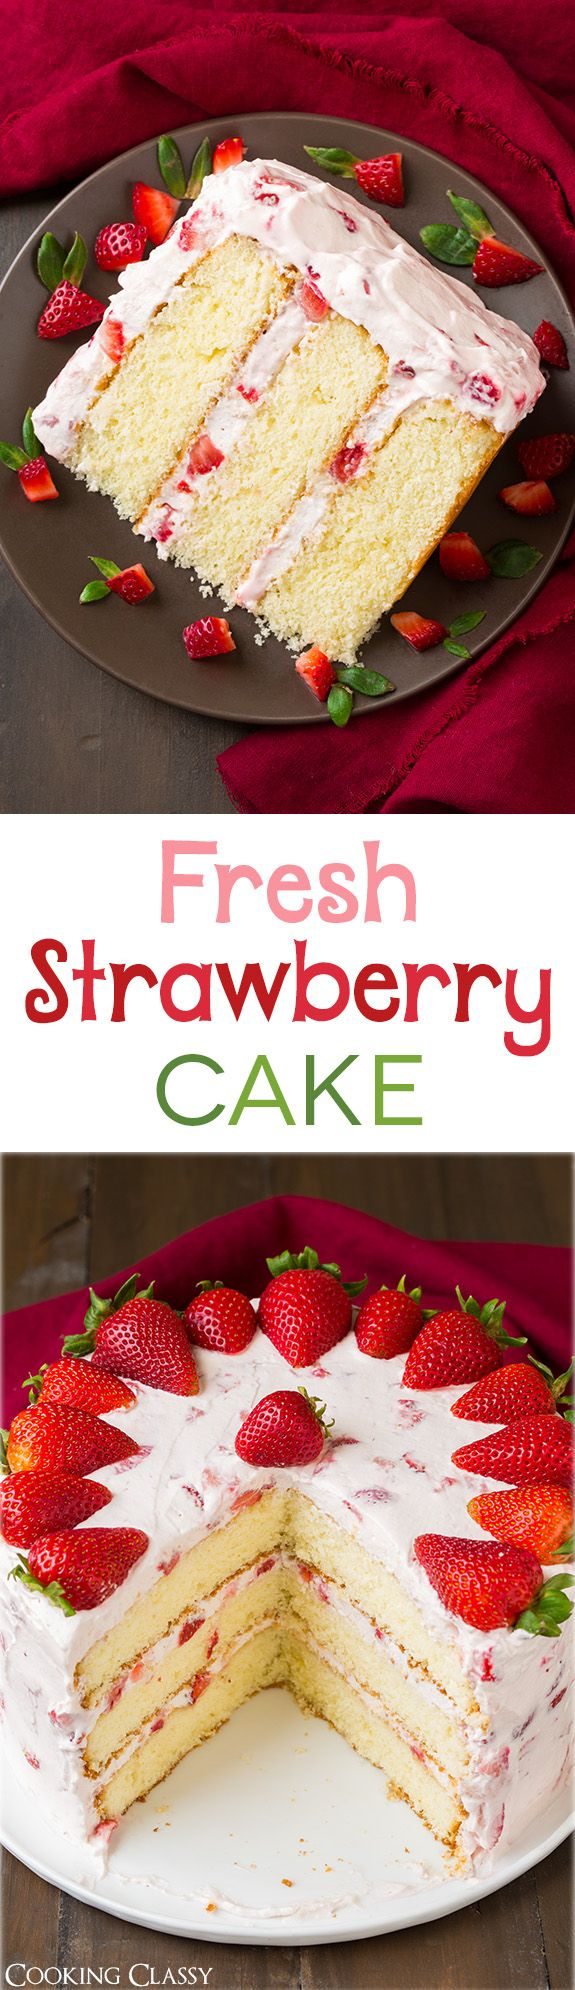 Fresh Strawberry Cake - this cake is DIVINE!! It's The perfect summer cake! The cream cheese in the whipped cream topping makes all the difference. (Summer, berry cake, berry desserts, strawberry recipes)